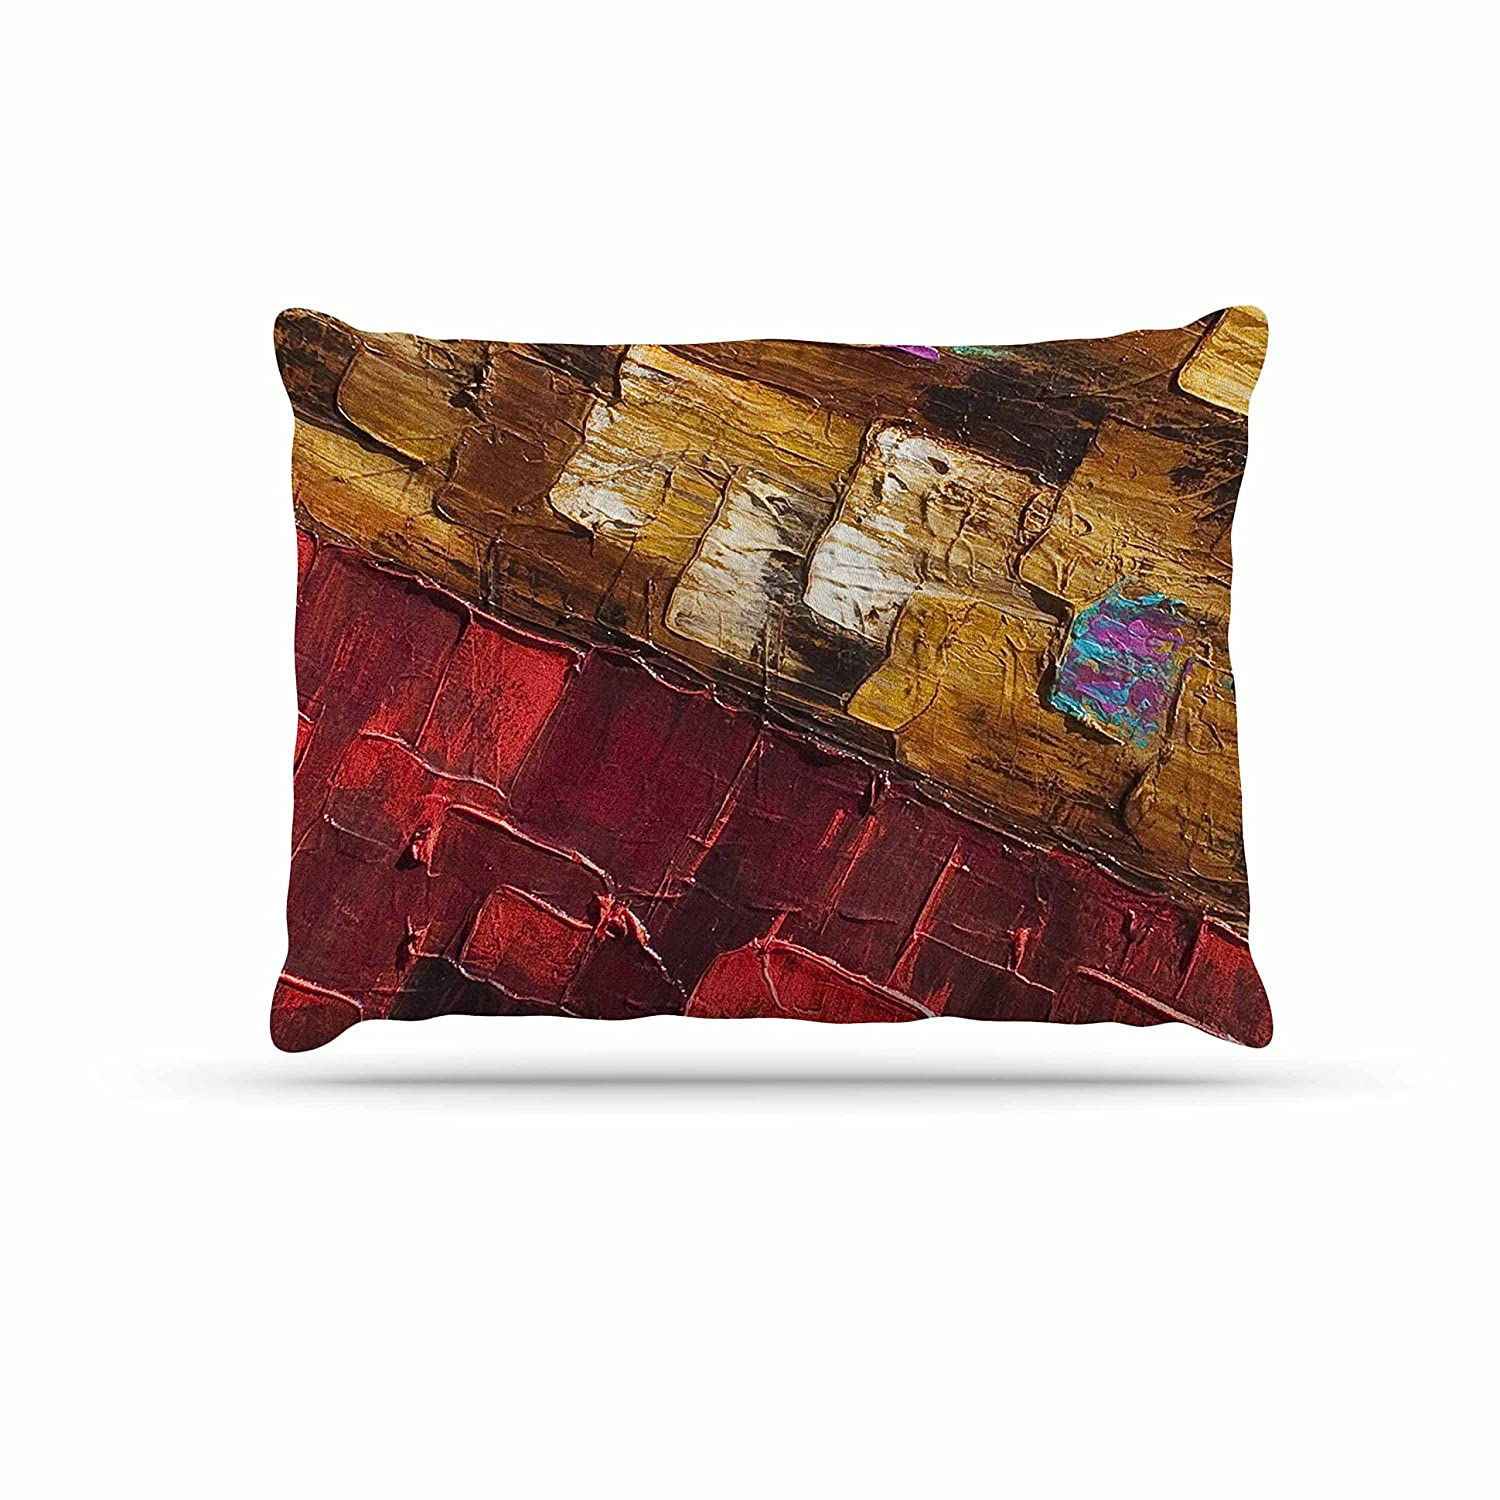 KESS InHouse Stacey-Ann Cole Wise Words People Ethnic Dog Bed, 50  x 40